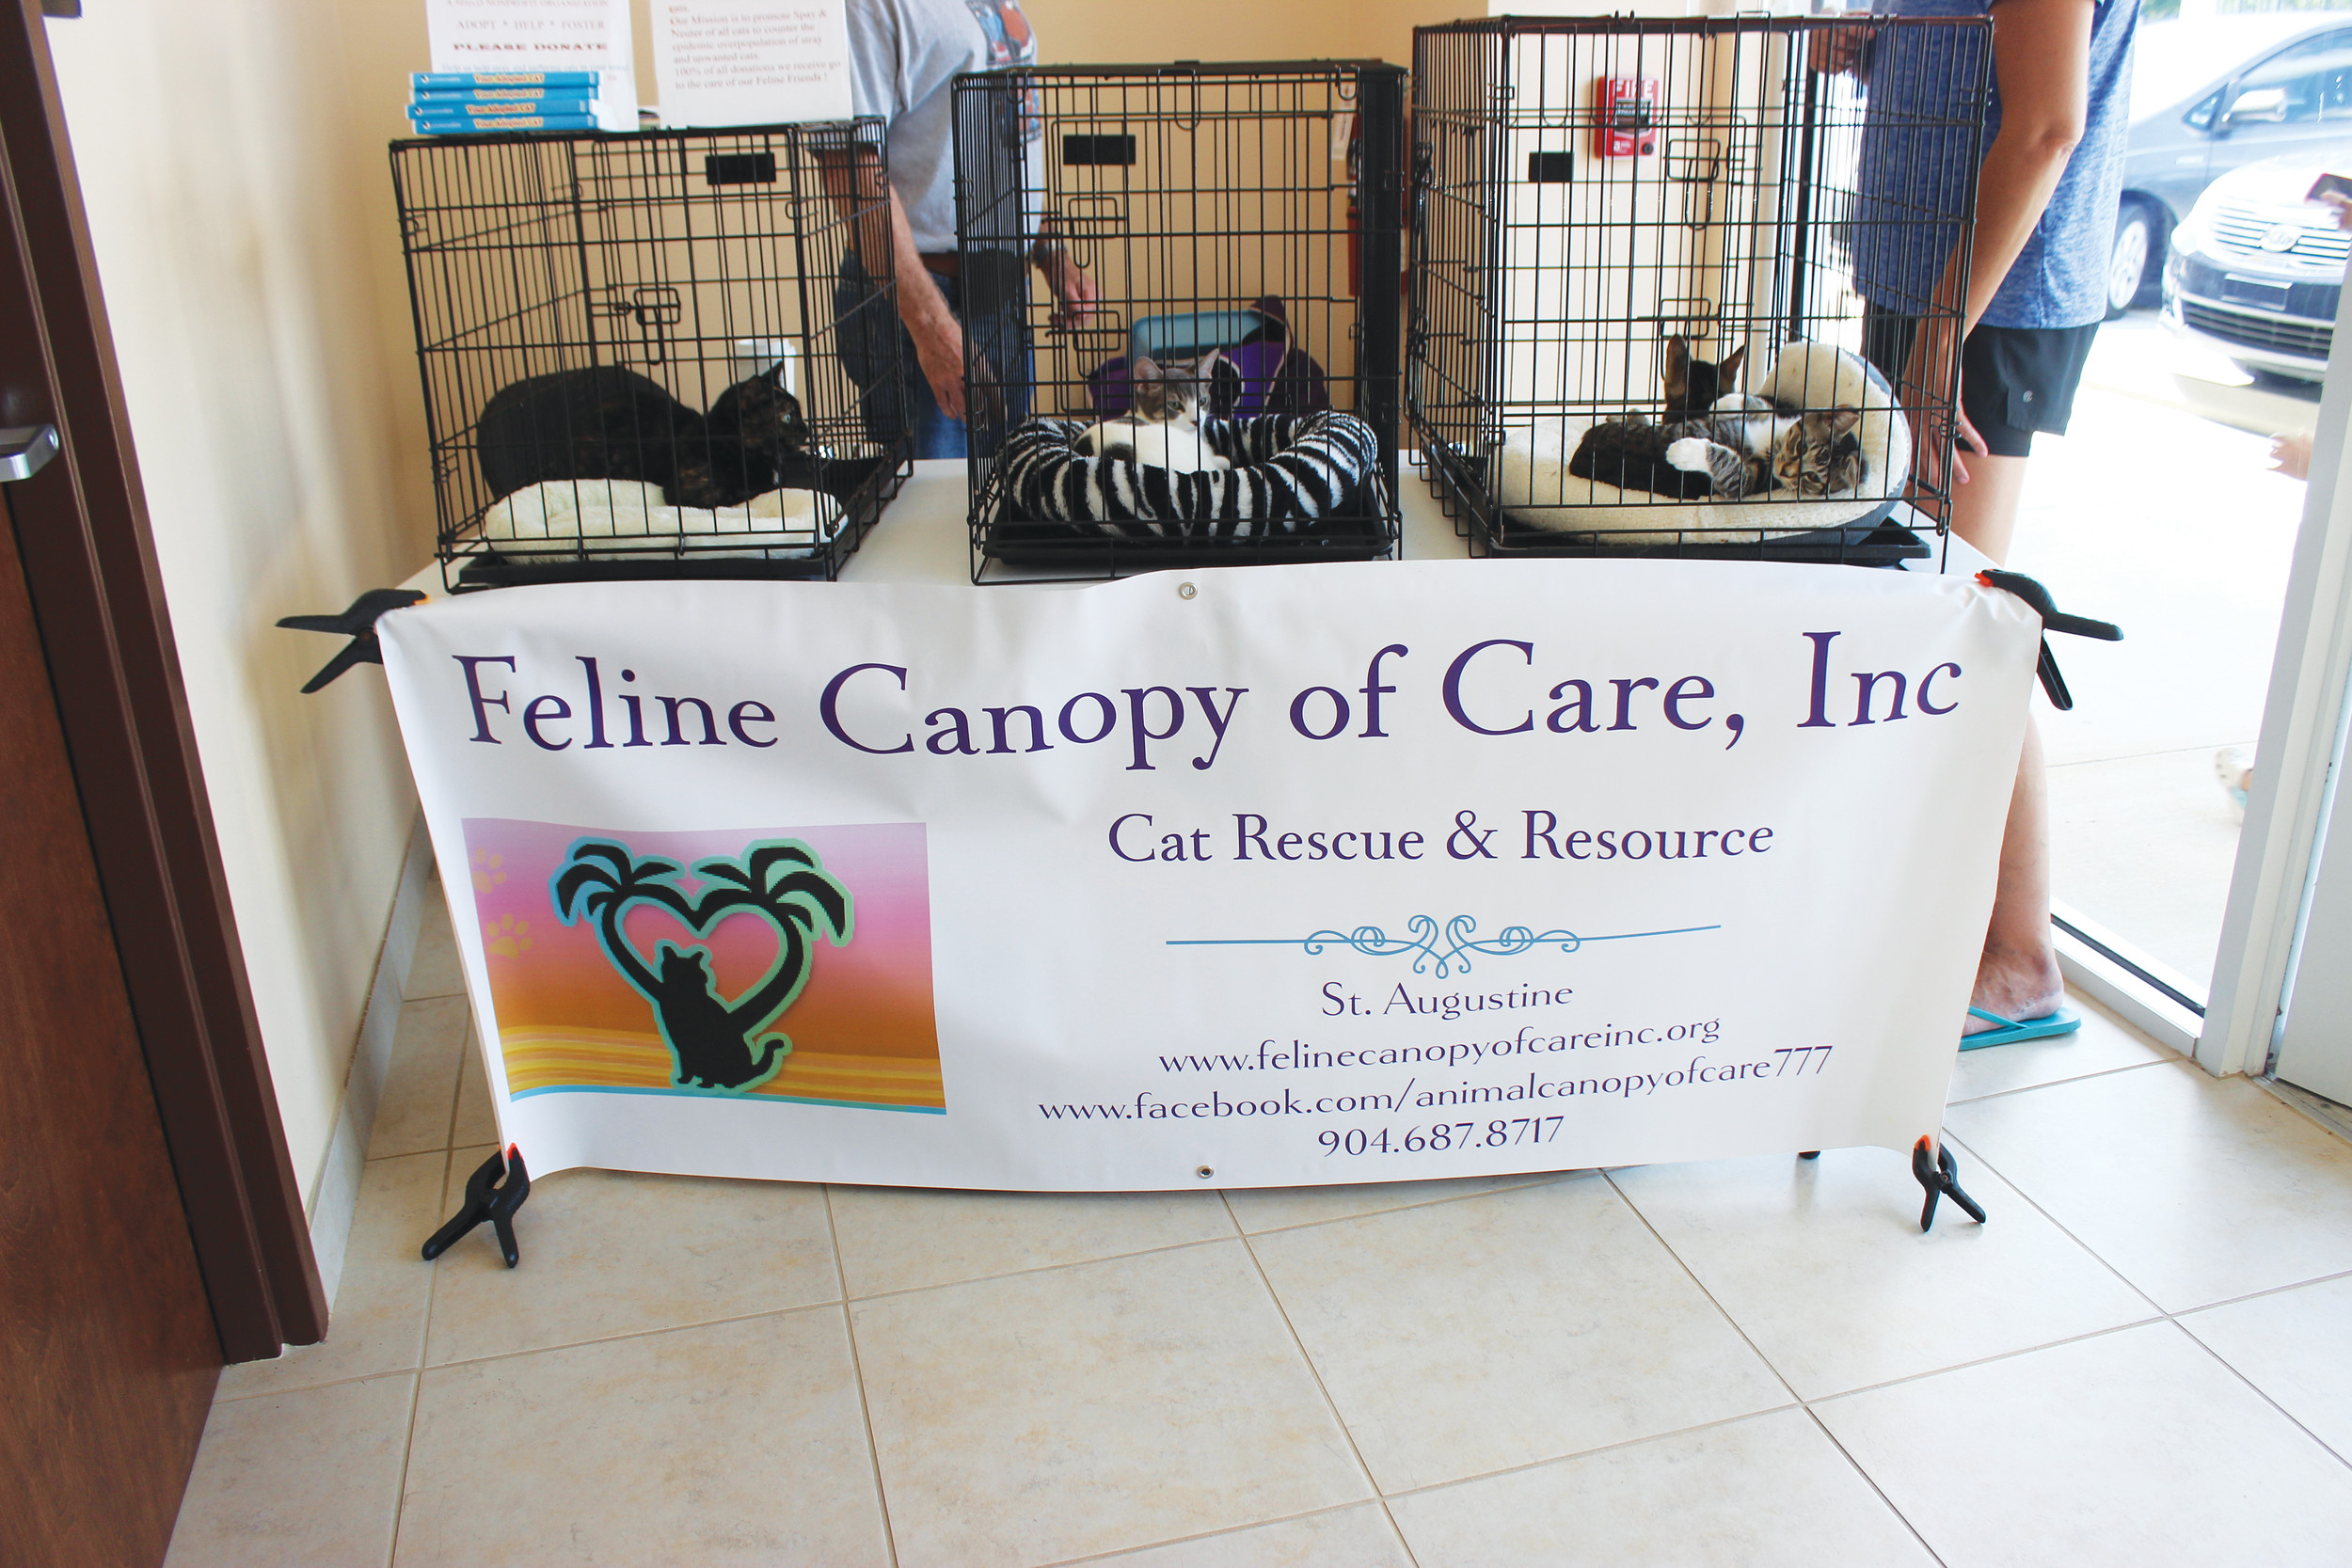 Kittens available for adoption through Feline Canopy of Care, Inc,, were at the clinic's grand opening. Feline Canopy of Care, Inc., is a rescue, adoption and resource group for homeless cats. The nonprofit group is a volunteer, foster home-based, no-kill cat rescue, which gives adoptable cats the opportunity to live together in foster homes rather than public shelters. All cats and kittens are fully vetted, including vaccinations, spaying/neutering and flea prevention prior to adoption. For more information or to see available cats and kittens, go to www.felinecanopyofcare.org.